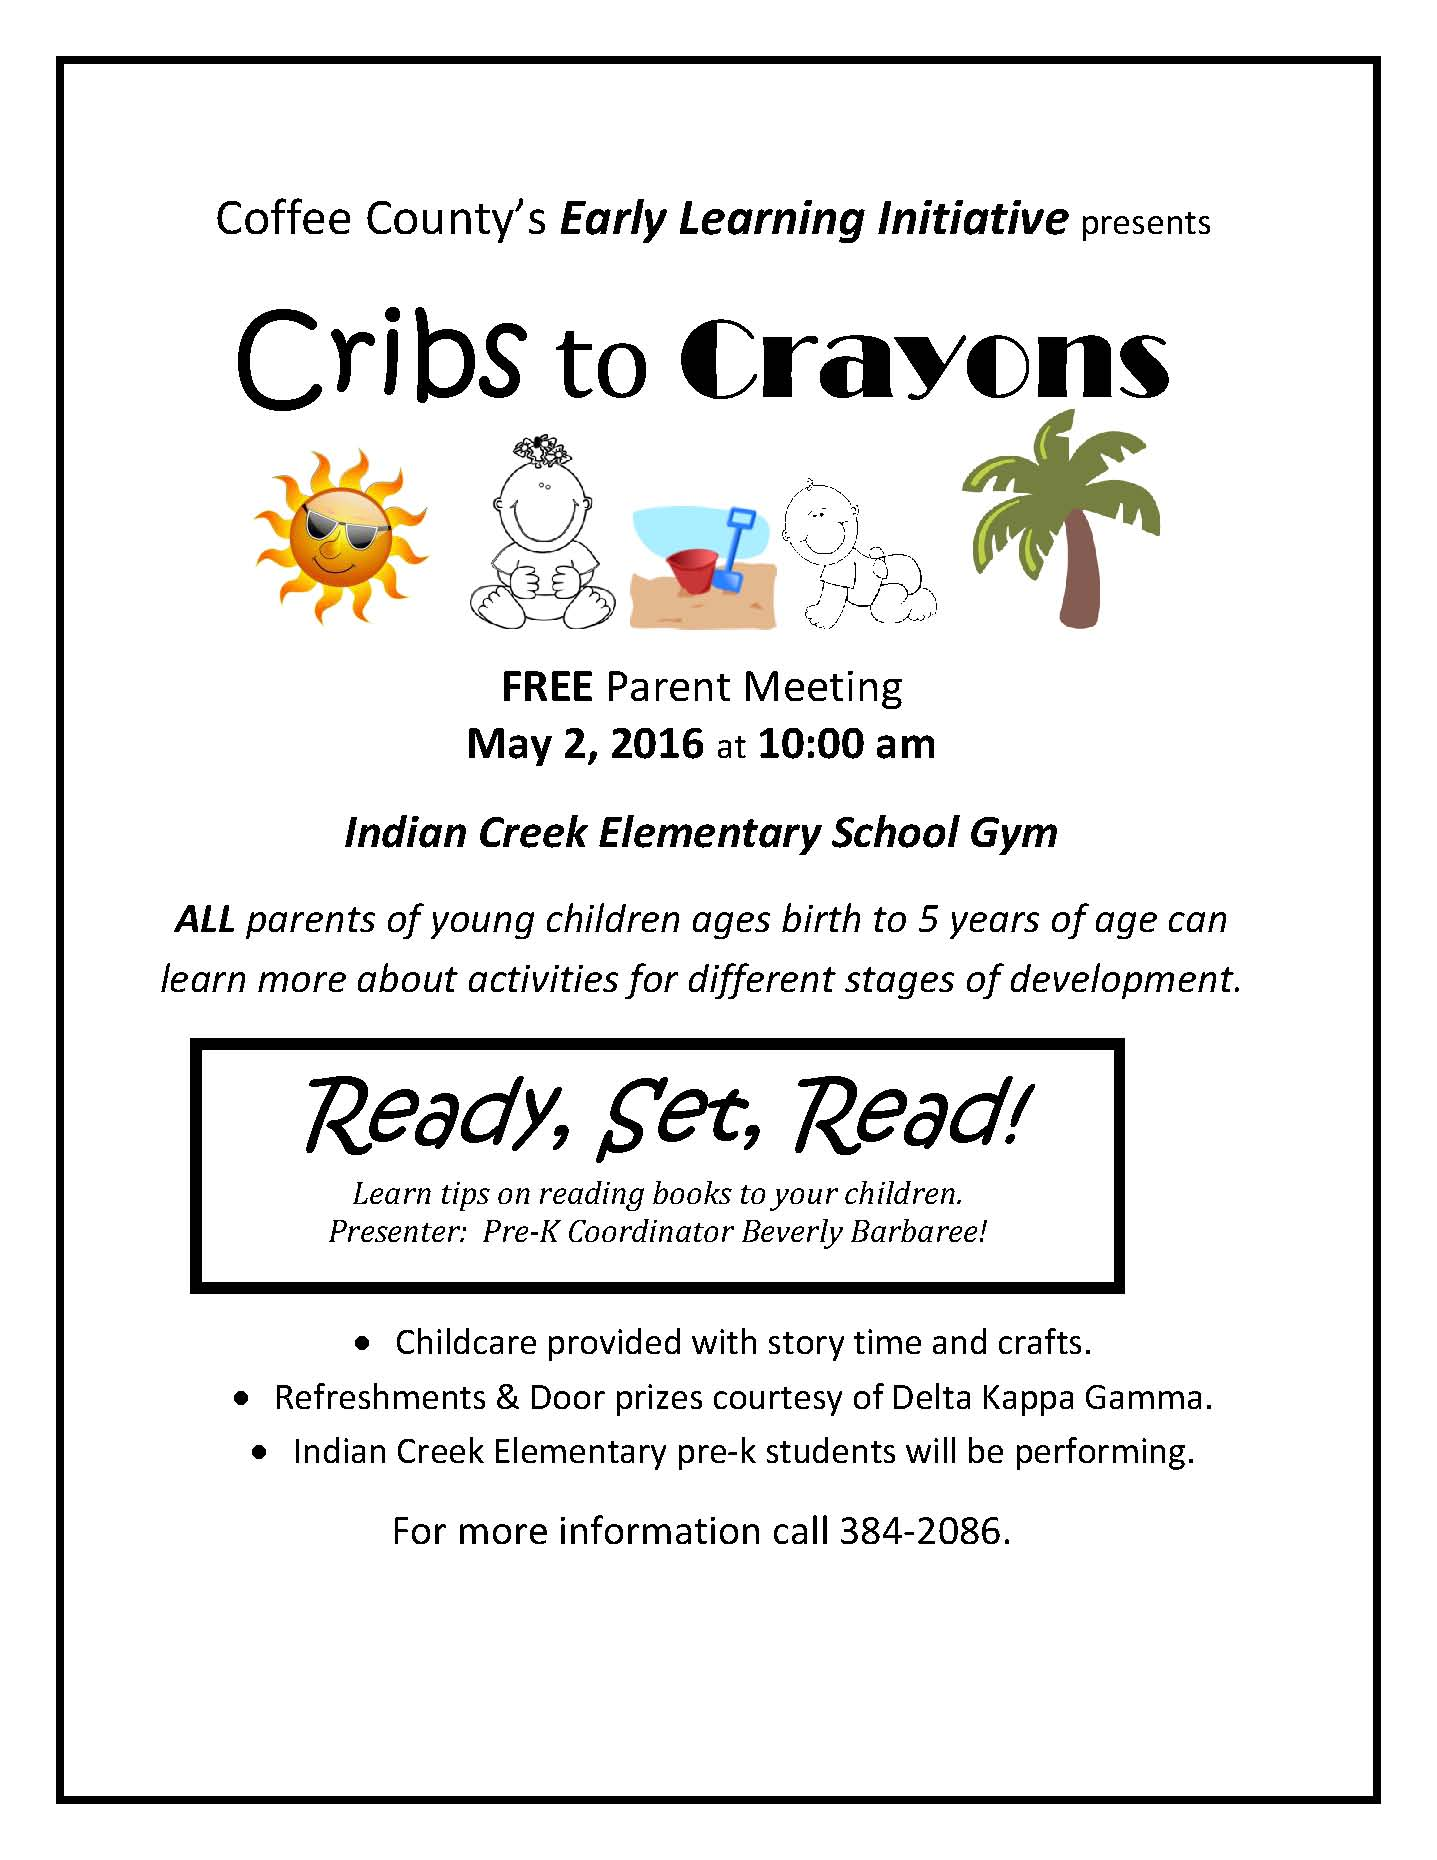 Coffee County School System - Cribs to Crayons Parent Meeting